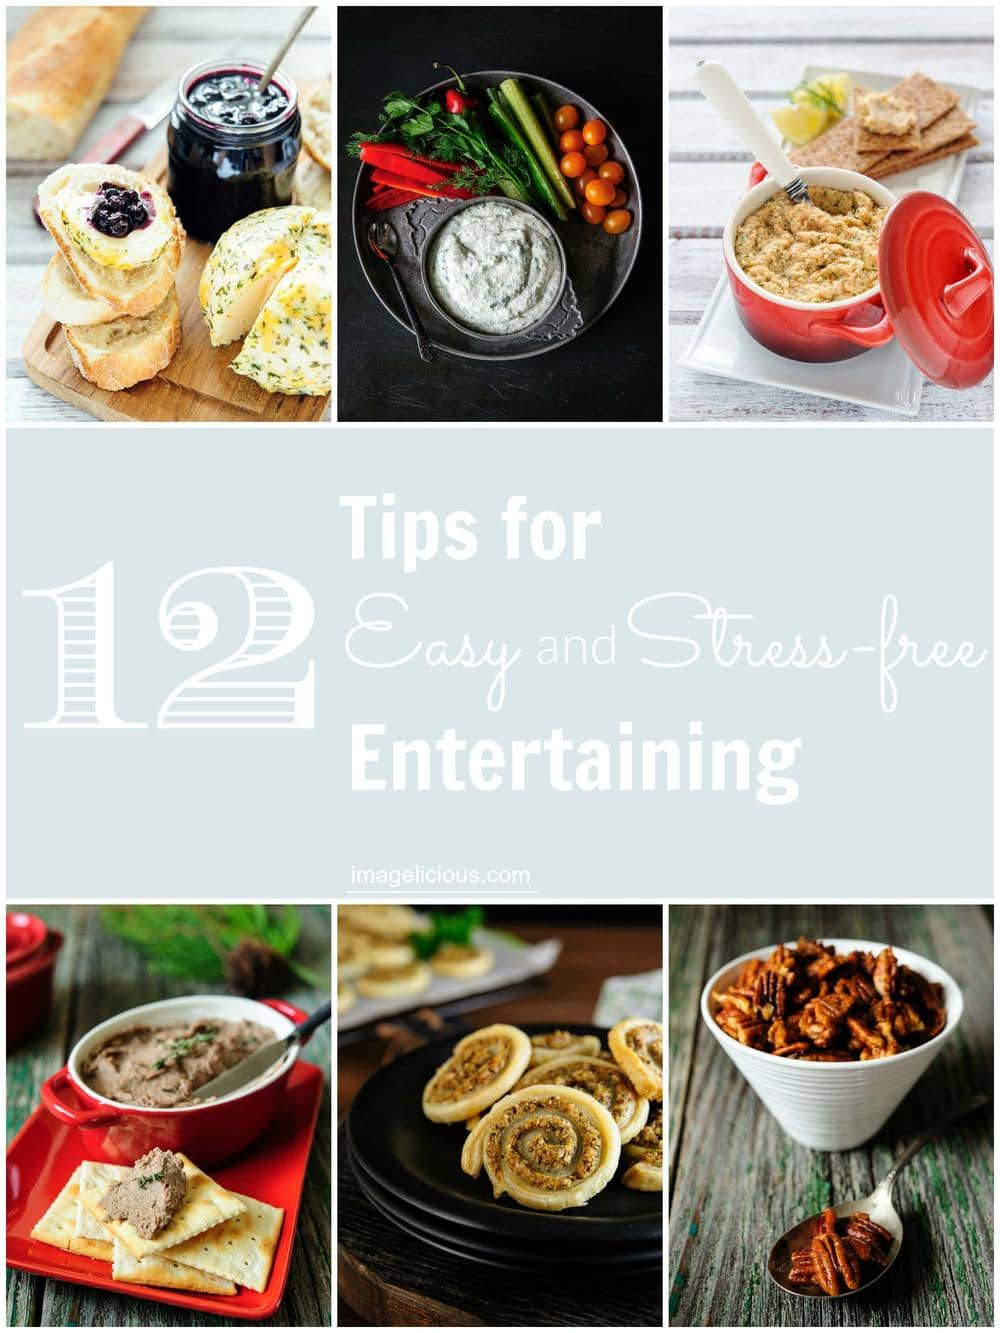 My 12 Tips for Easy and Stress-free Entertaining will help you survive this busy holiday season and actually enjoy it! Tips from how to set the table to prepping the recipes to shortcuts for cooking!